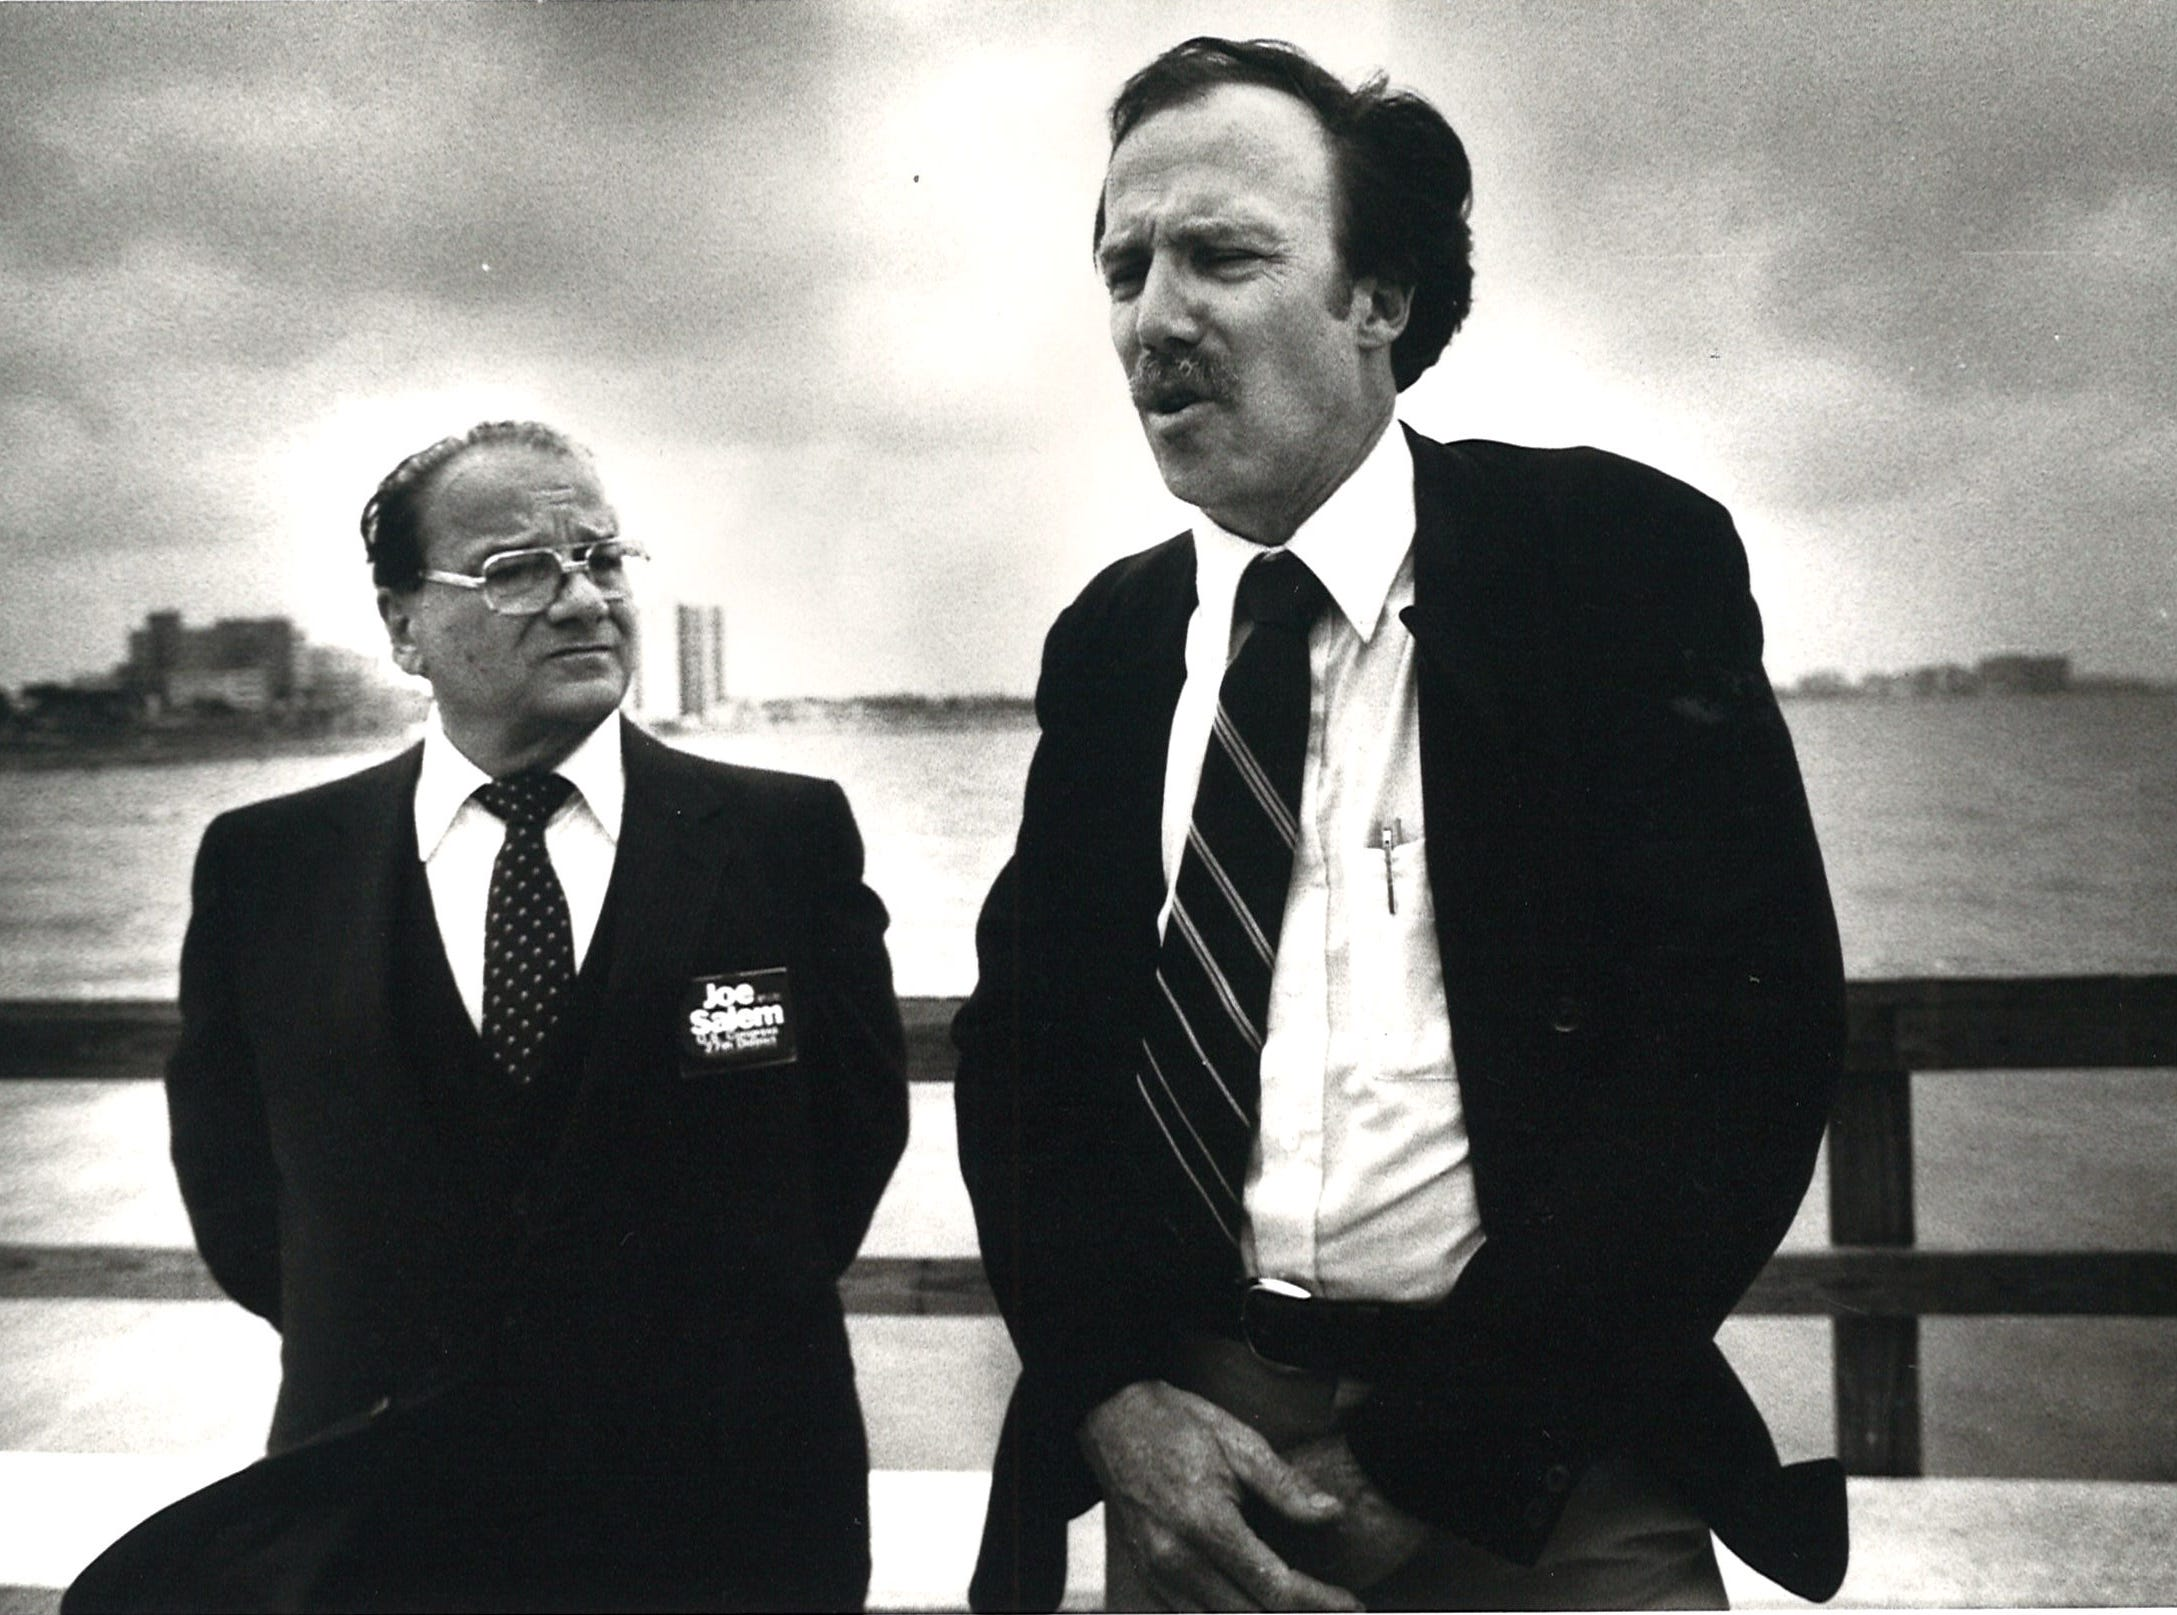 Ted Jones (right), of the Coastal Bend Audubon Society announces the society's endorsement of Joe Salem (left) for the 27th Congressional District while standing on the Cole Park Pier on May 11, 1982.